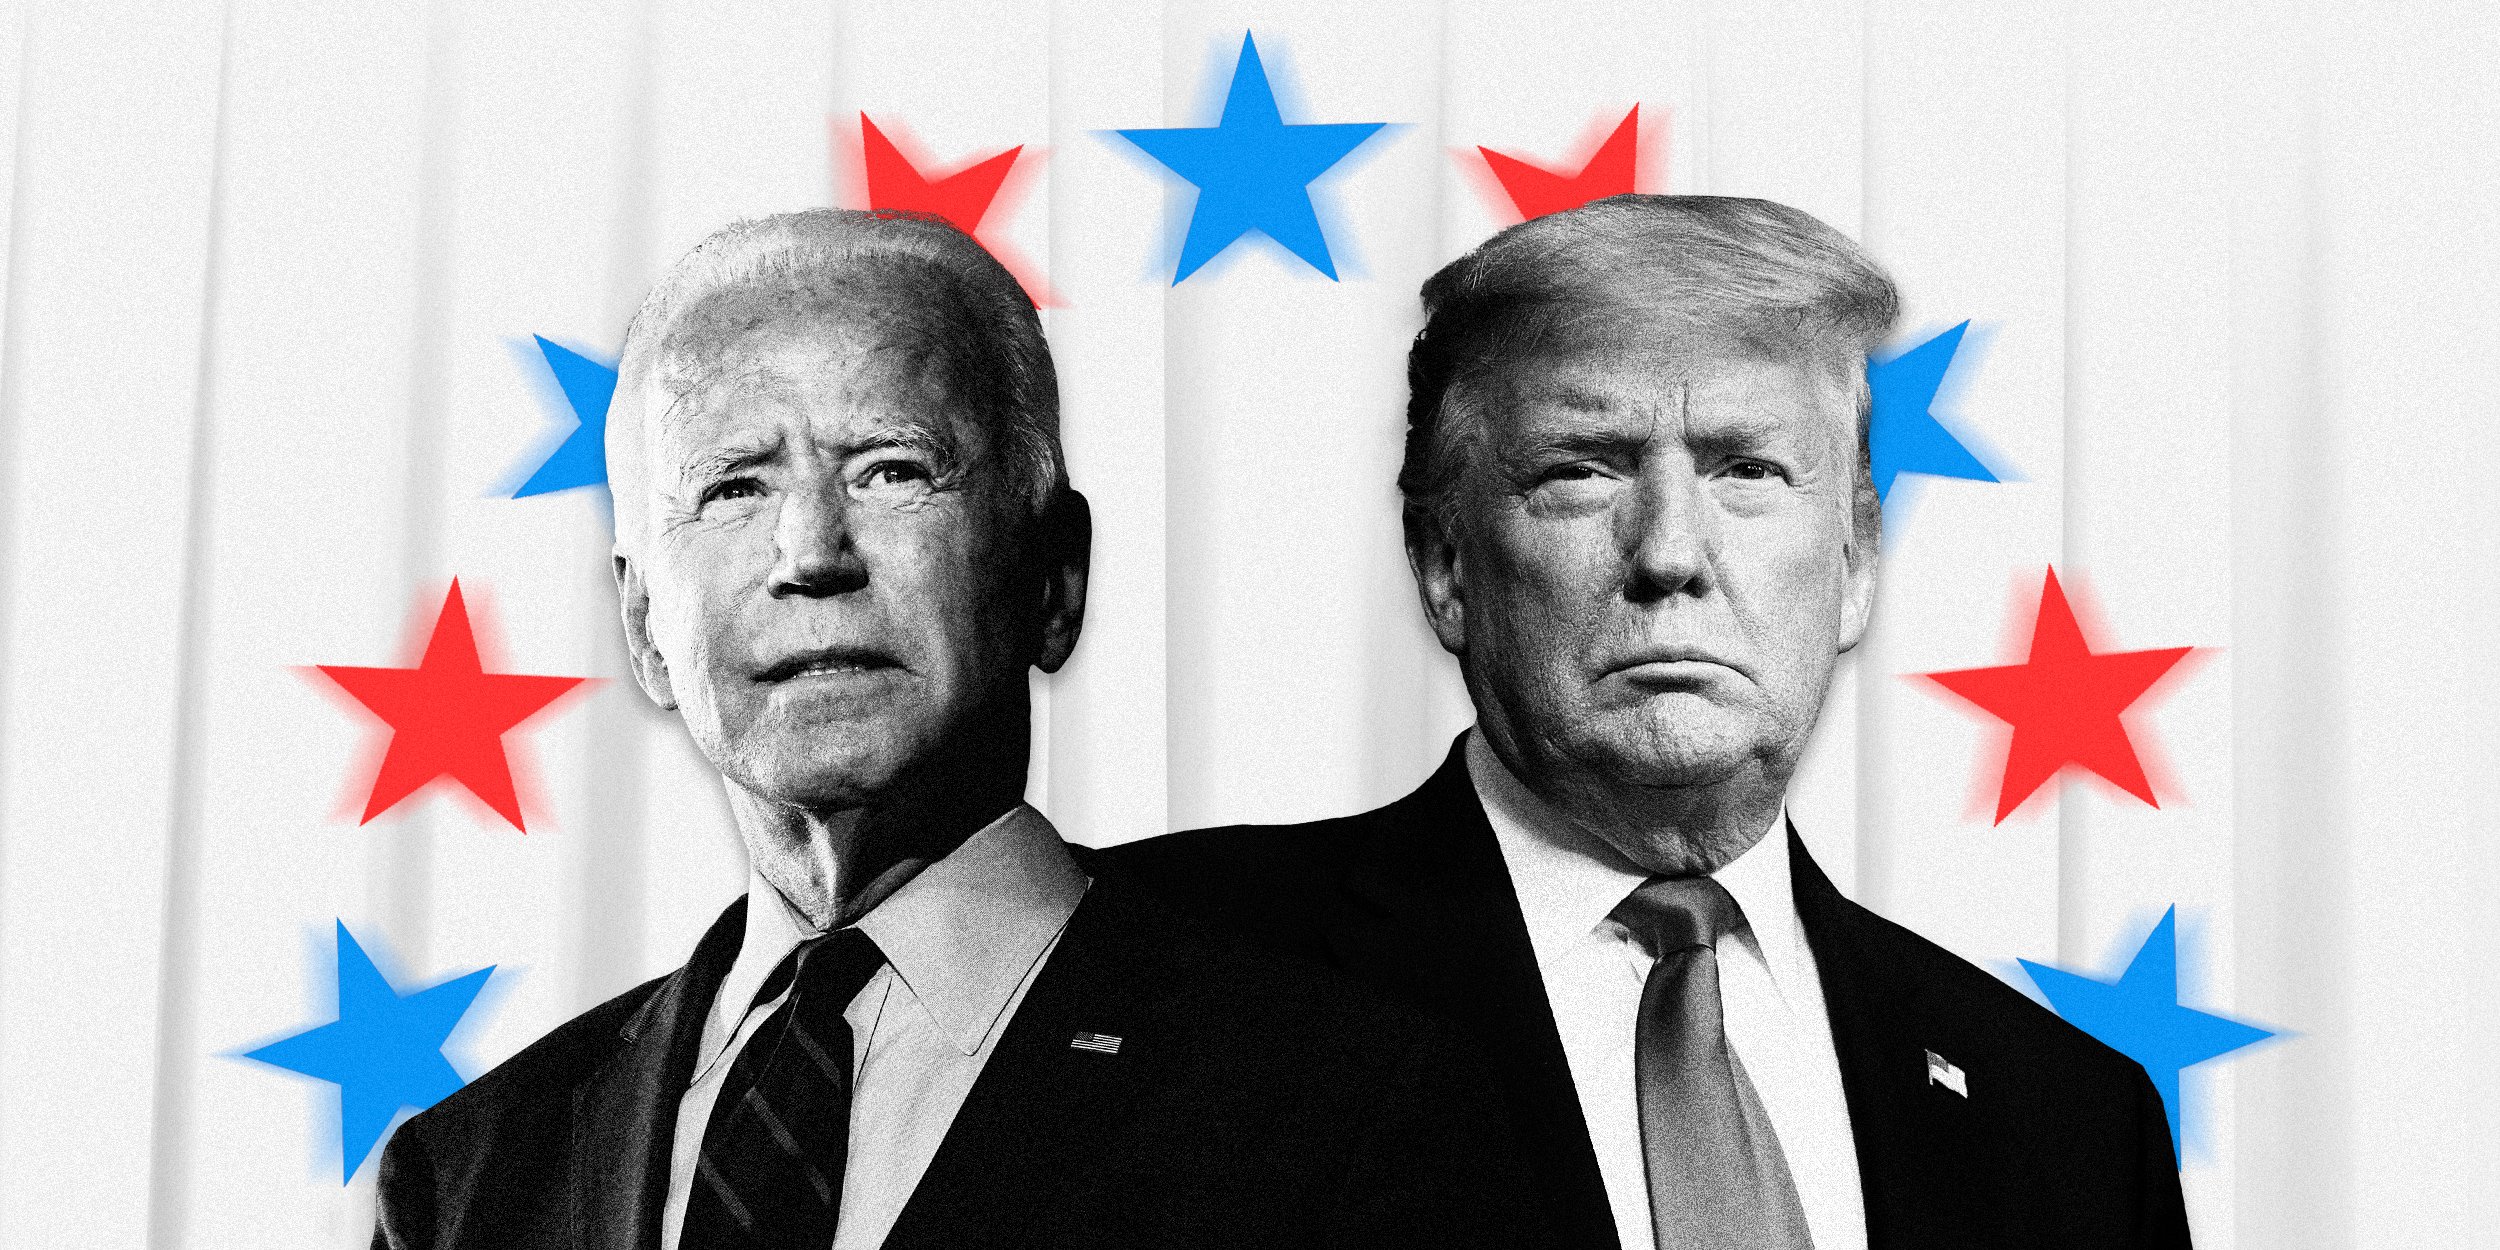 Biden hits key swing states in fight for final votes, Trump sticks to lower-key Election Day schedule